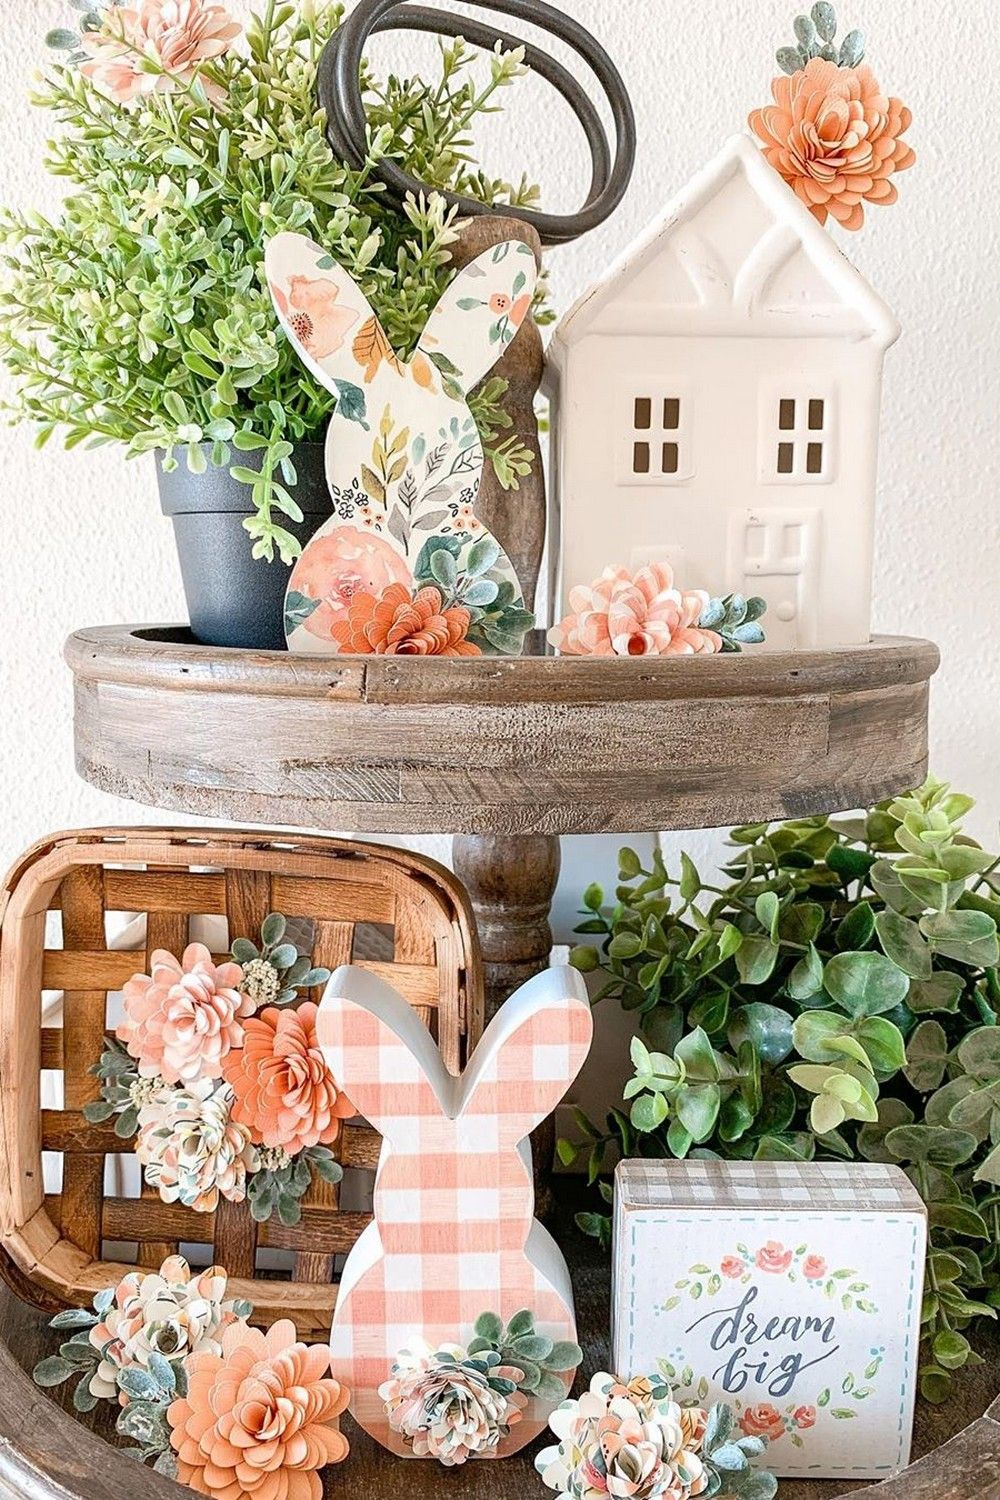 34 Easter Decorations That Will Make Your Home Look Great ...